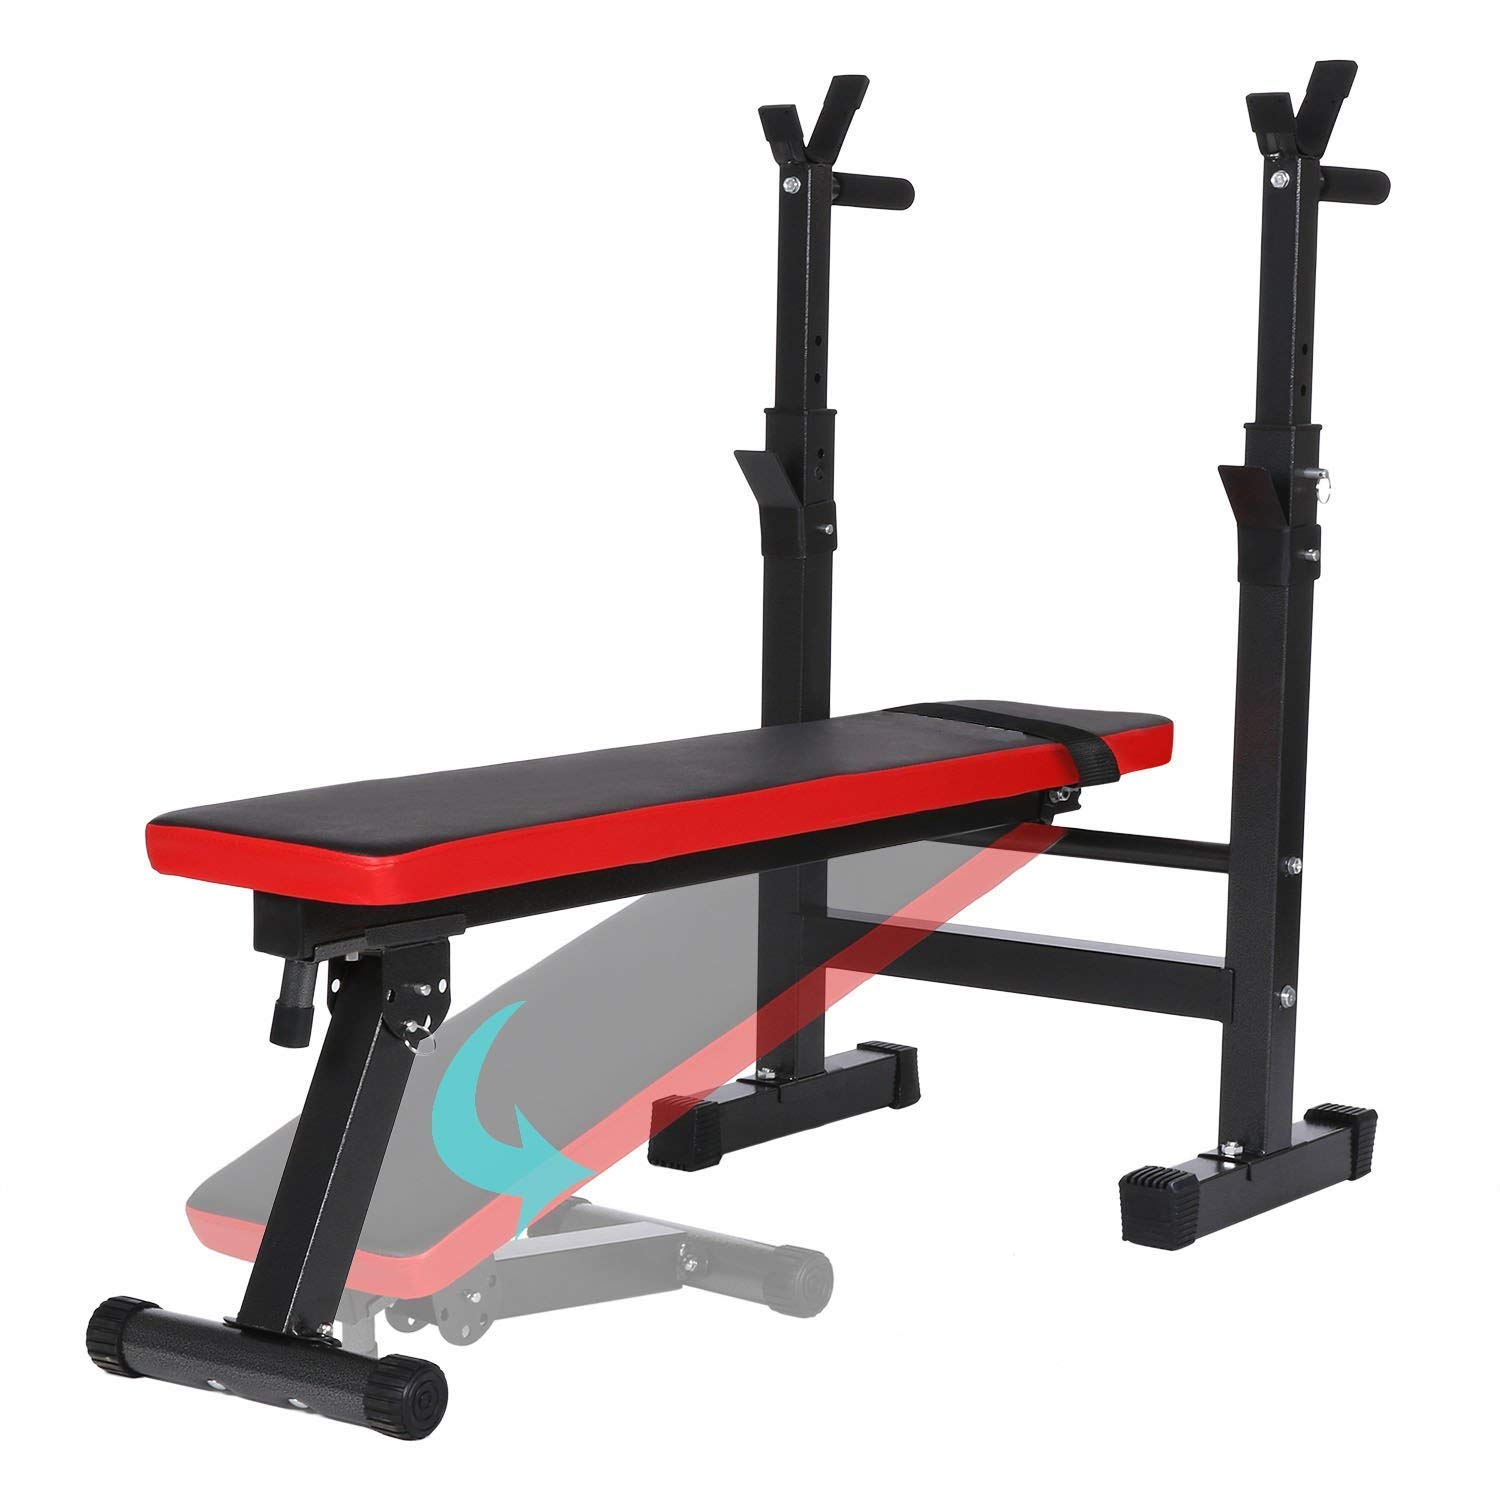 Belovedkai Adjustable Olympic Weight Bench Full-Body Workout Fitness Bench with Rack (Black & Red)